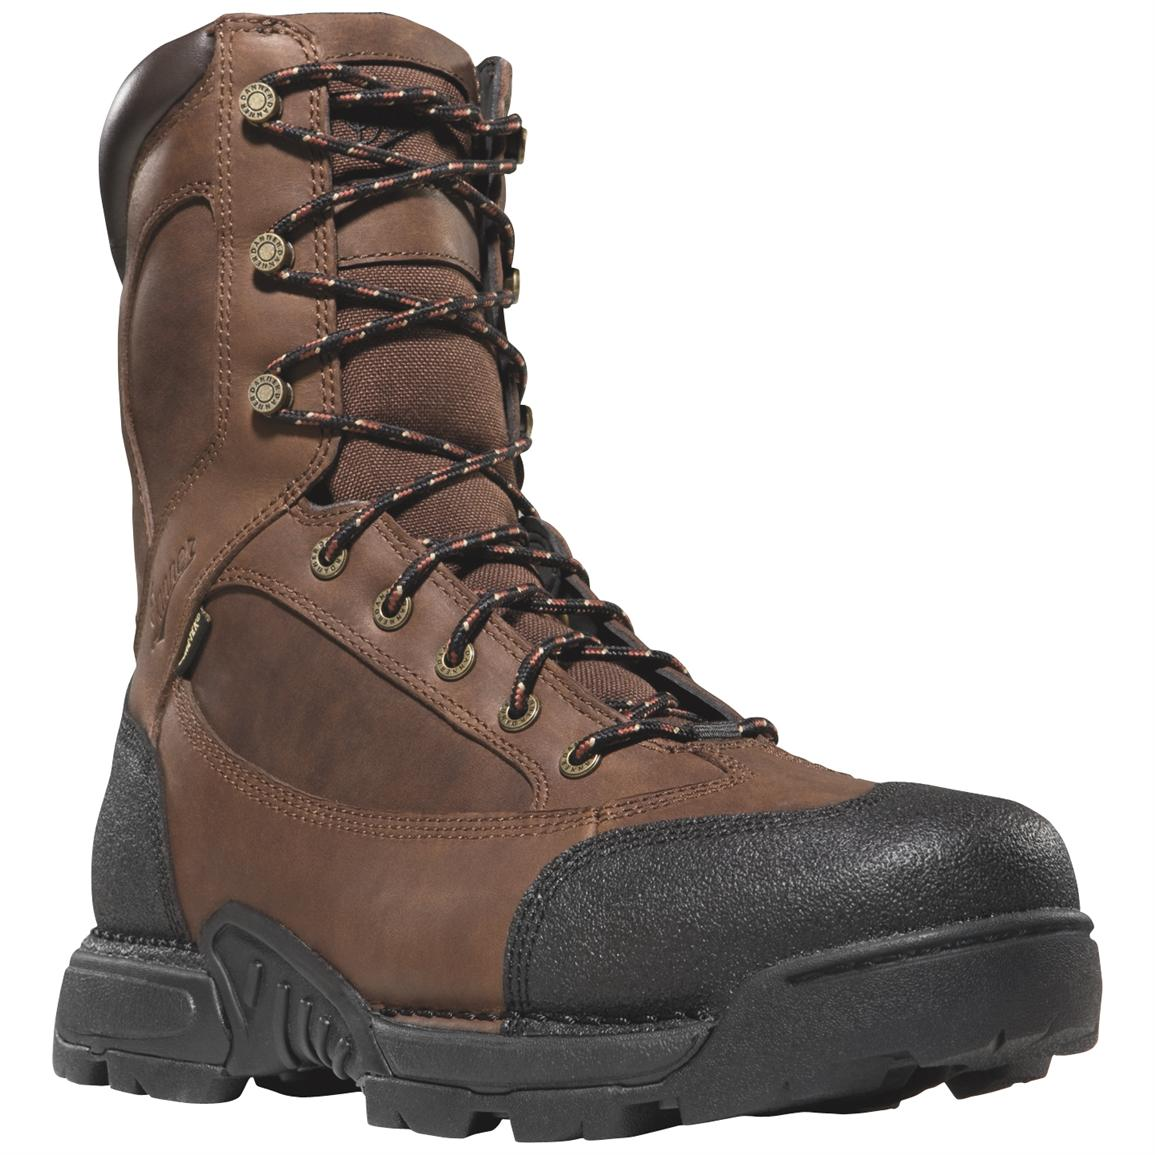 Men's Danner® 8 inch Pronghorn GORE-TEX® 200 gram Thinsulate™ Insulated Boots